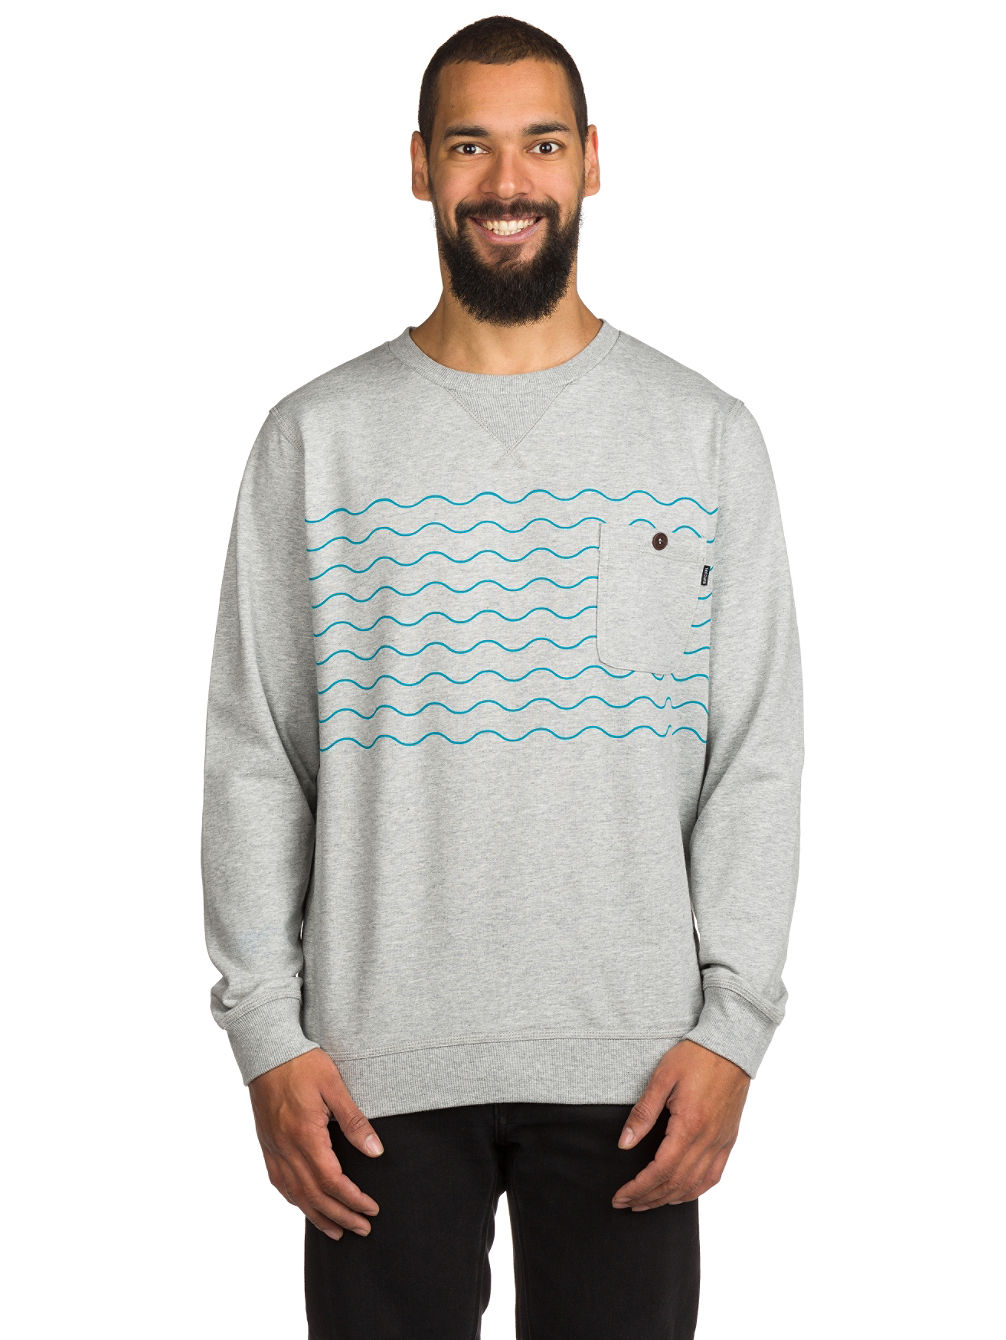 Wavy Party Crew Sweater